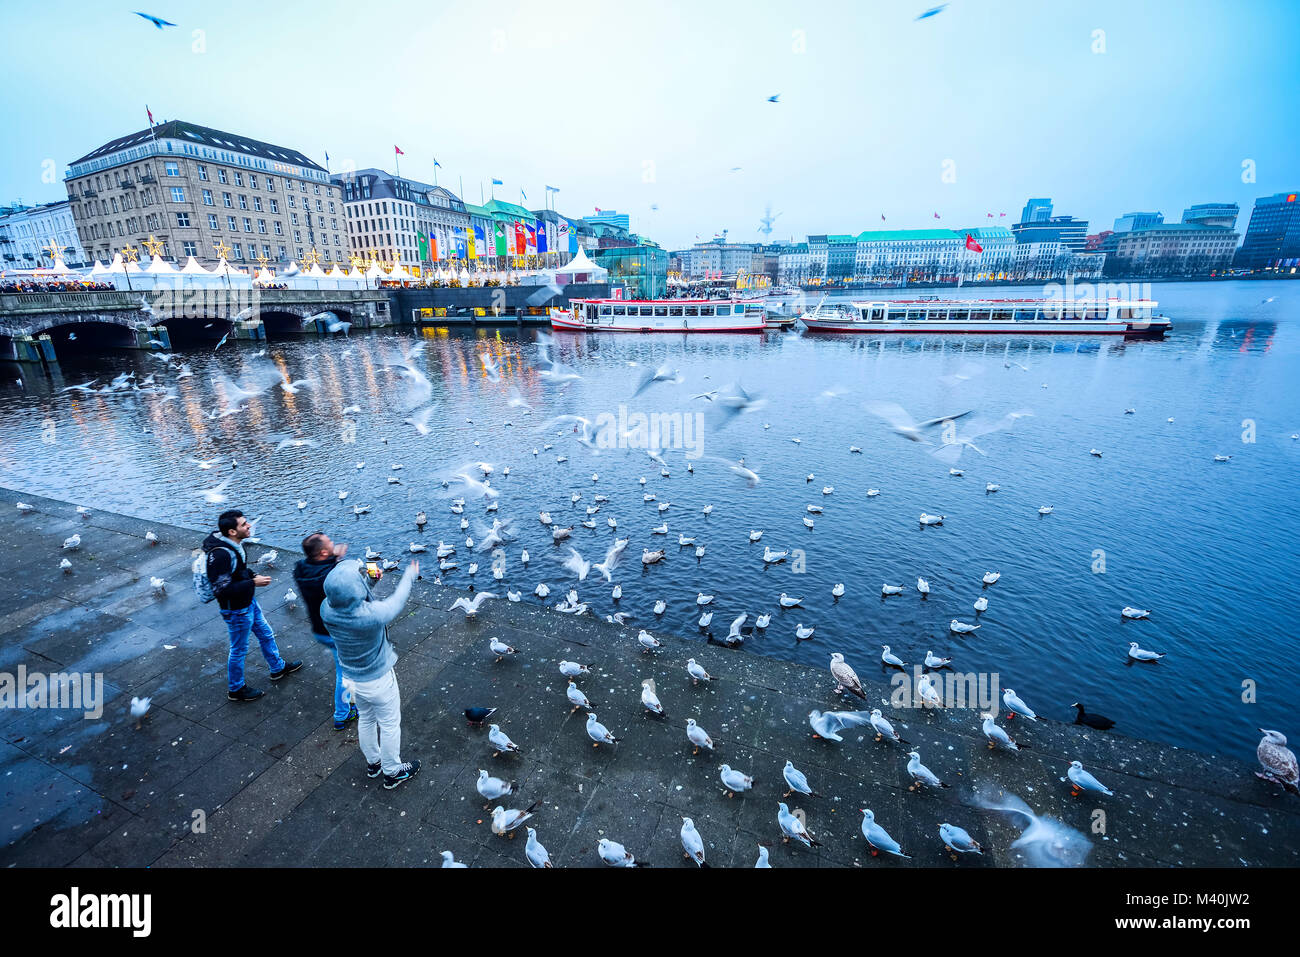 Seagulls feeding on the Inner Alster Lake in Hamburg, Germany, Europe, Möwen füttern an der Binnenalster in Hamburg, Stock Photo